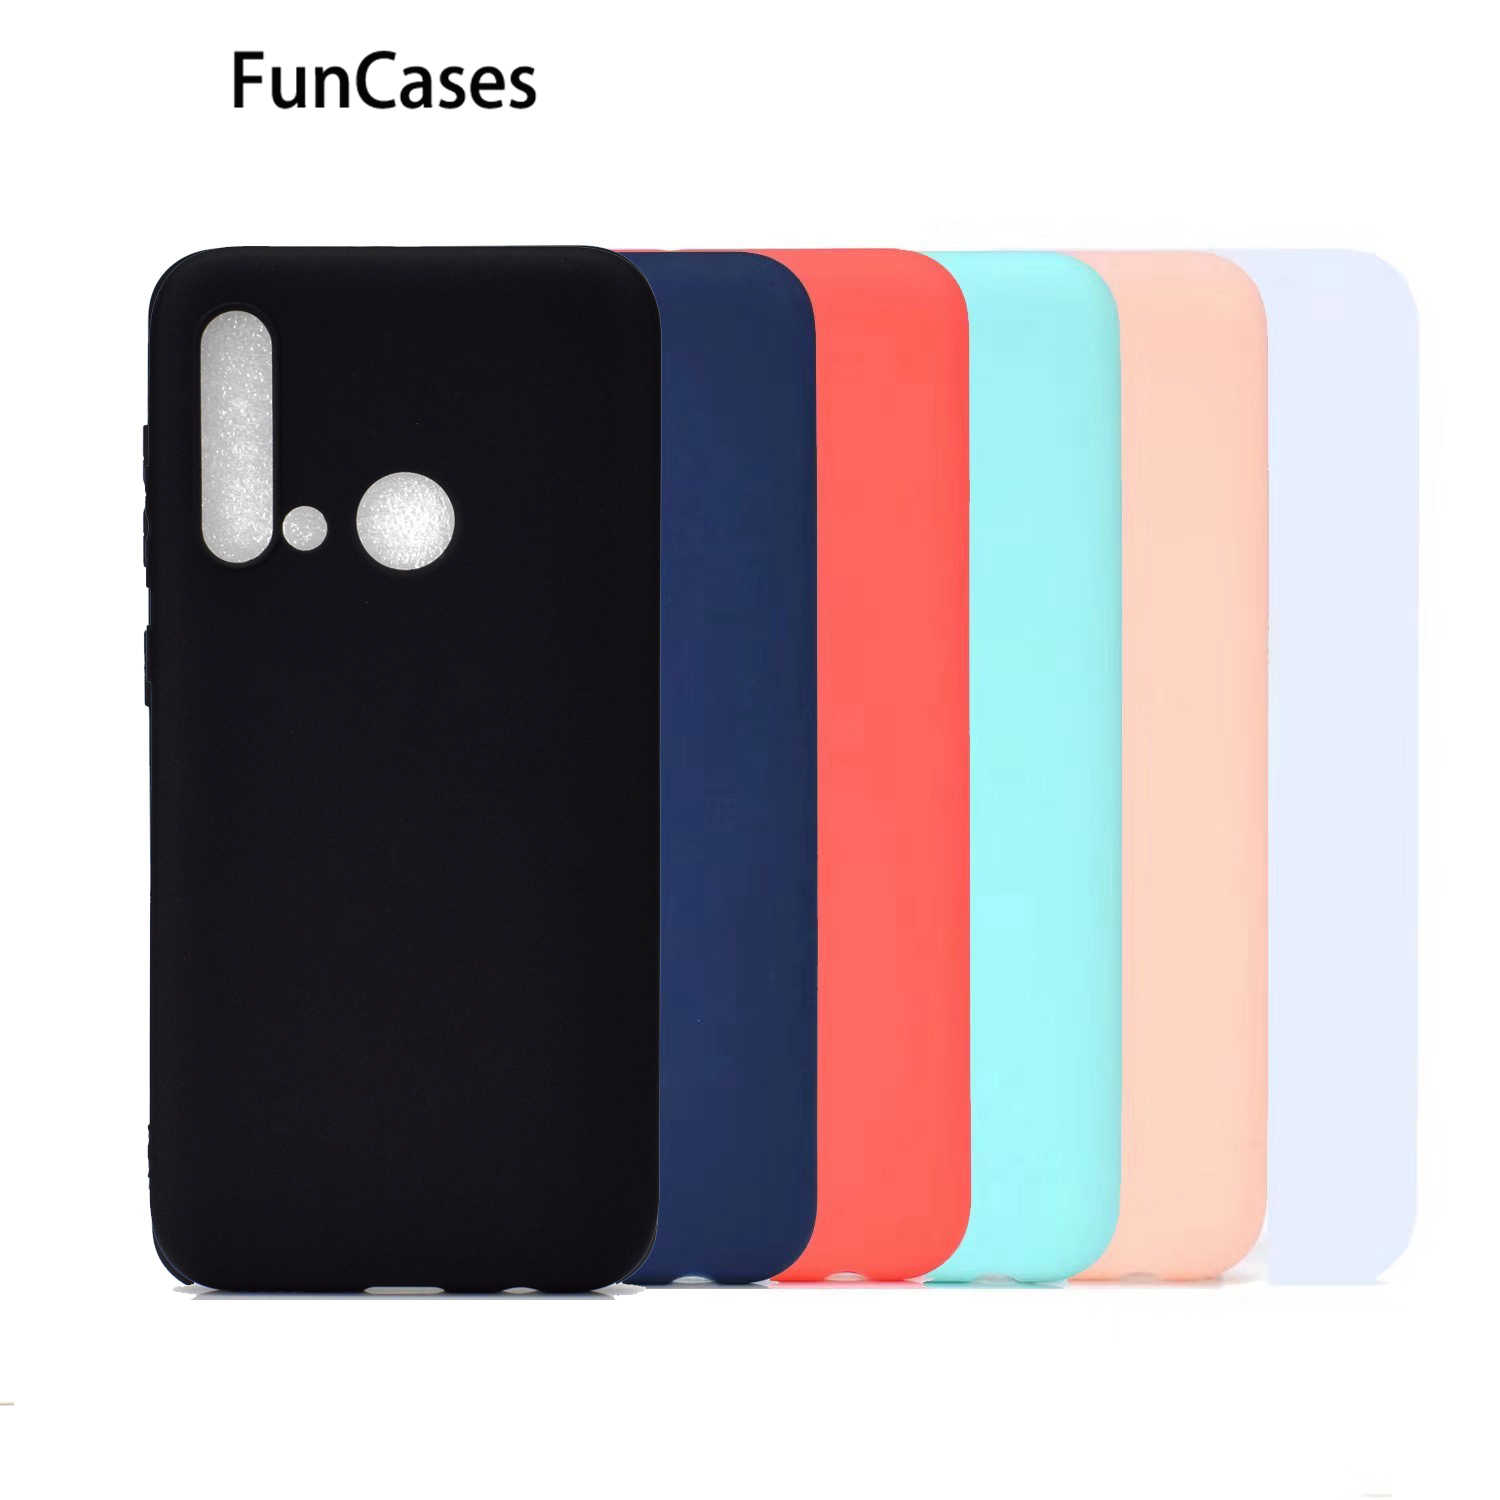 White Soft Silicone Cases For cover Huawei P8 Lite 2017 Cell Phone Cases Huawei Ascend capinha P10 Lite P20 2019 Pro P30 P8 P9